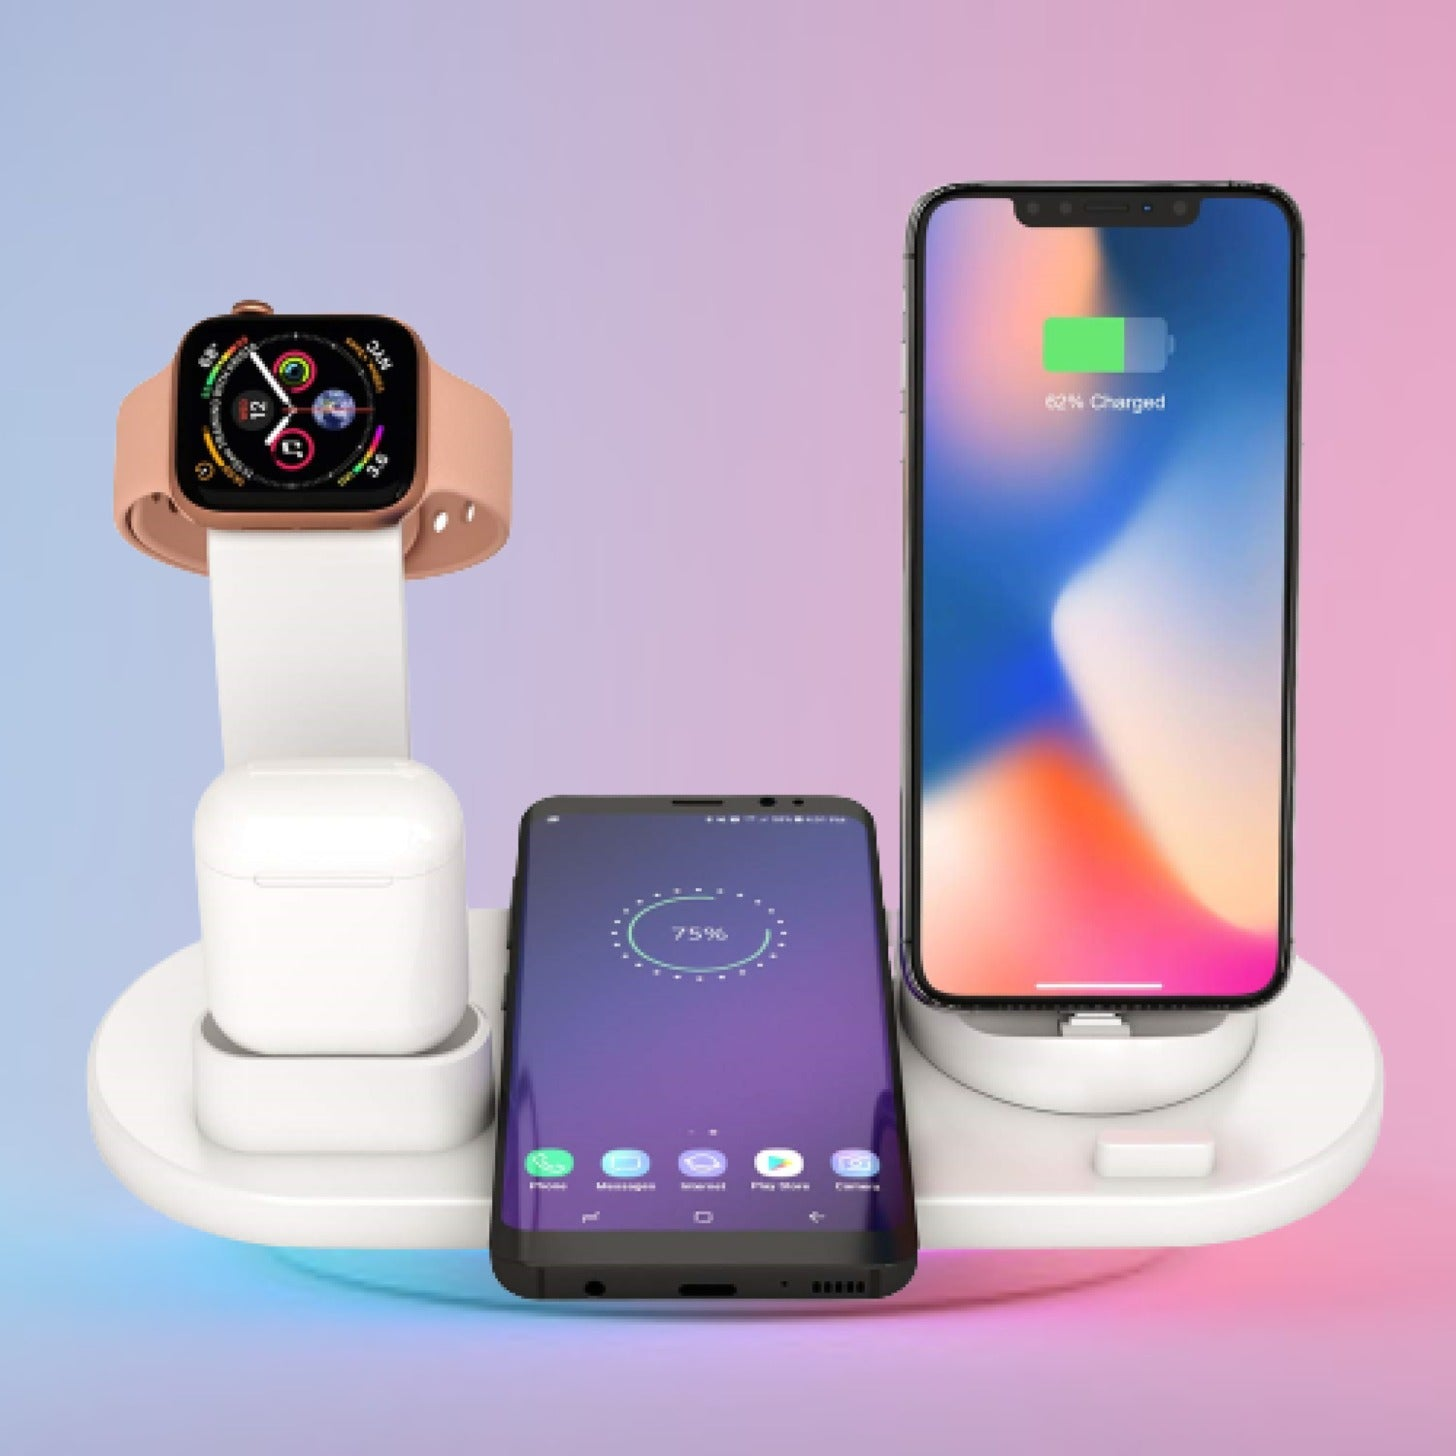 4 in 1 Wireless Charging Dock Charger Stand for iPhone Airpods Apple Watch - TurboTech215.com